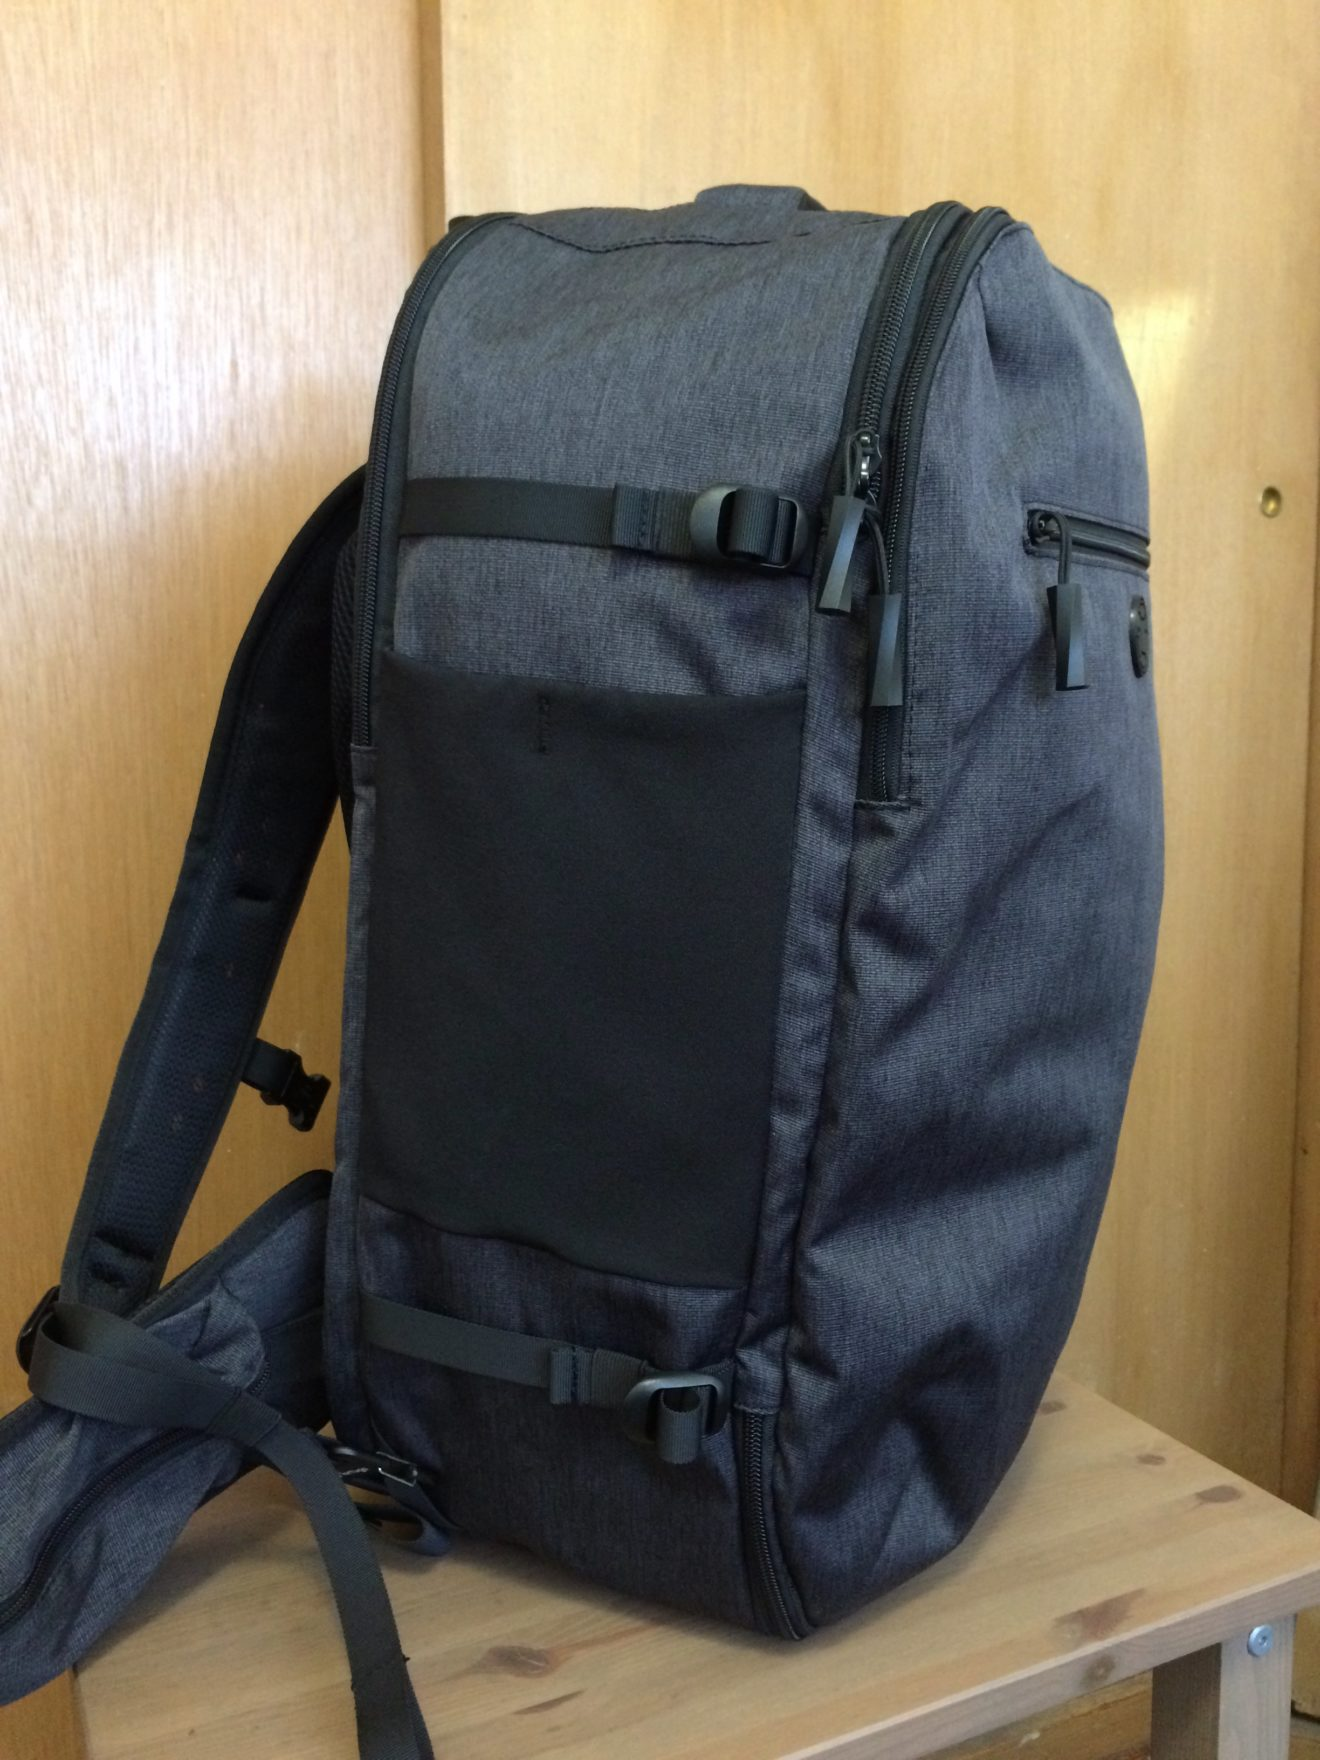 60d8d9e27fc6e Reviewing the new Tortuga Setout Backpack – Snarky Nomad